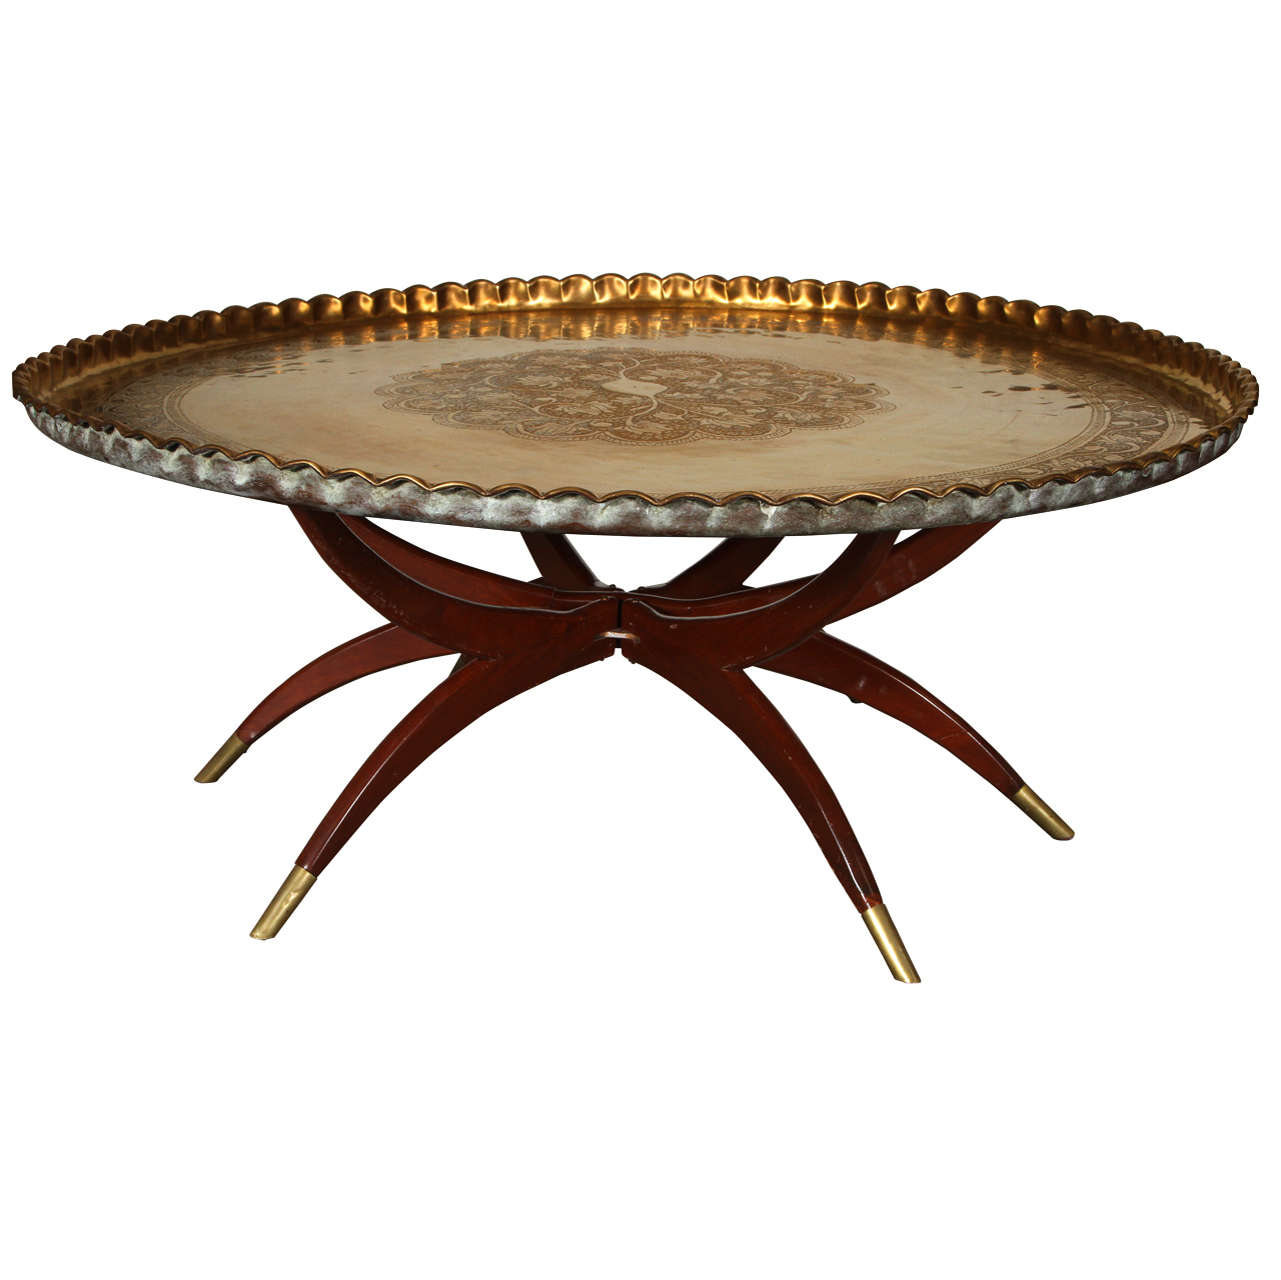 Large Moroccan Round Brass Tray Table on Folding Stand 45 in. 1